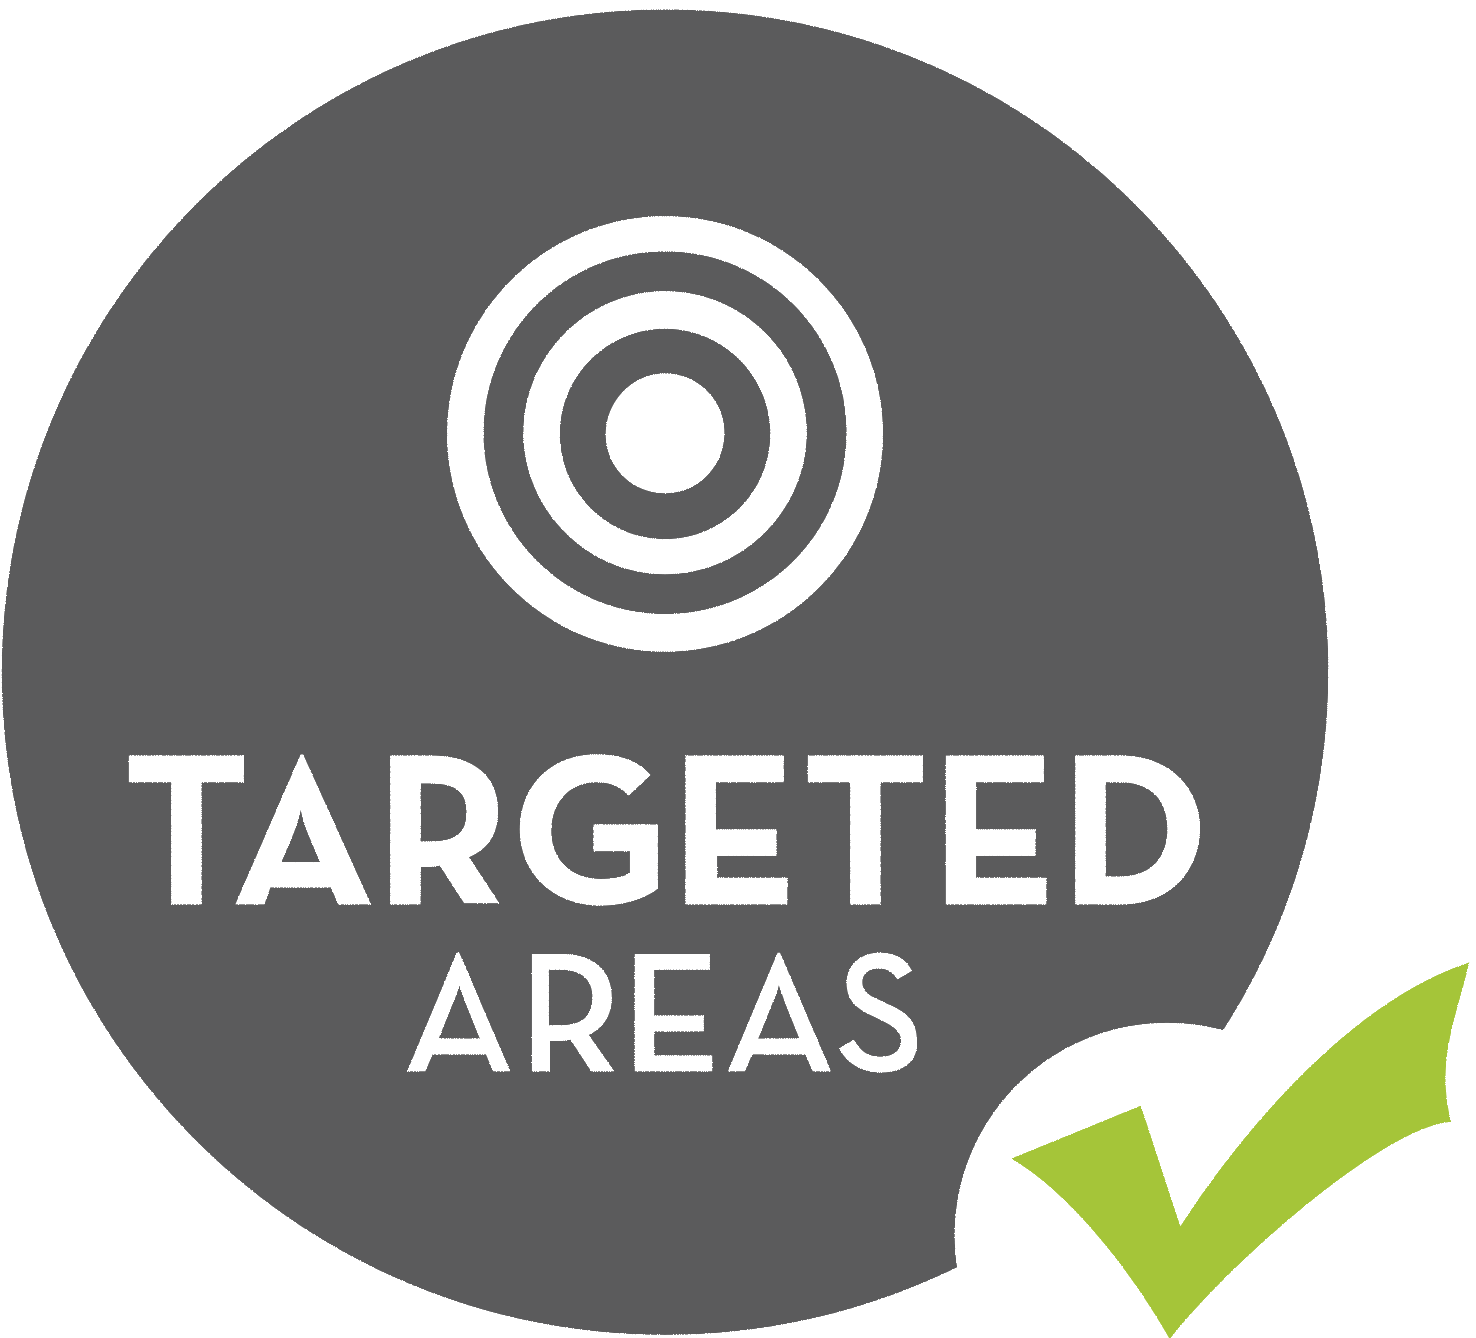 Targeted Areas